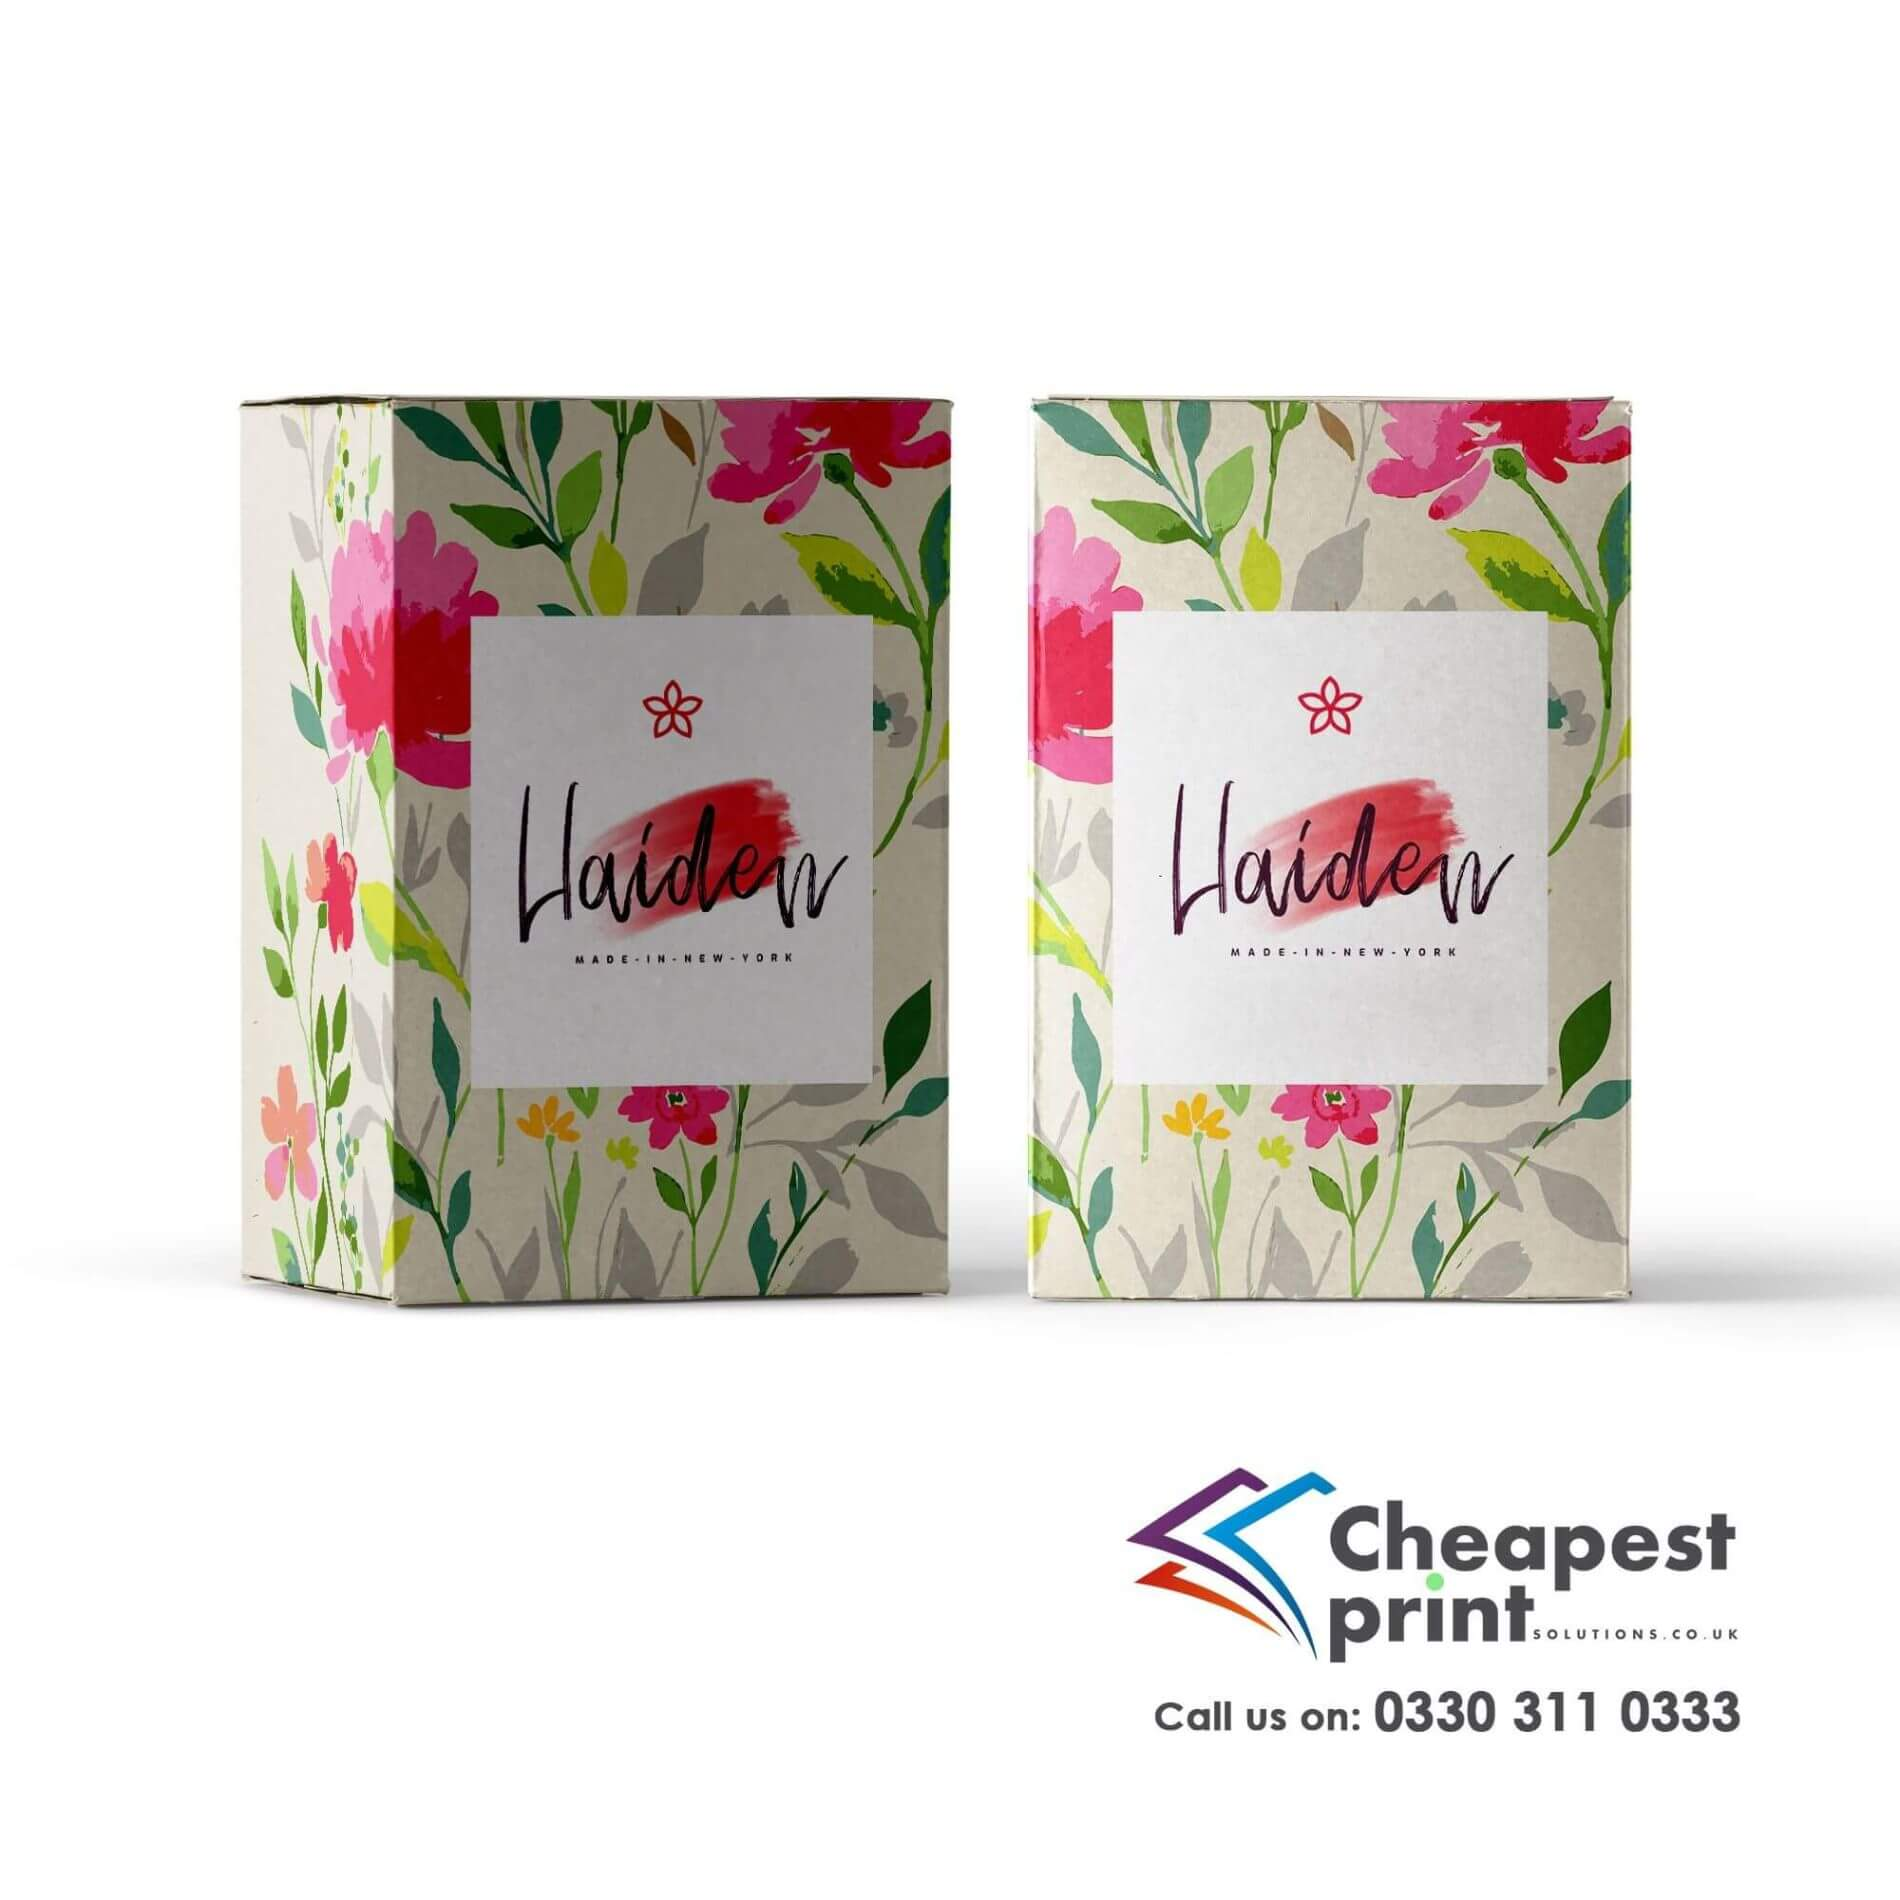 Printed Promotional Boxes